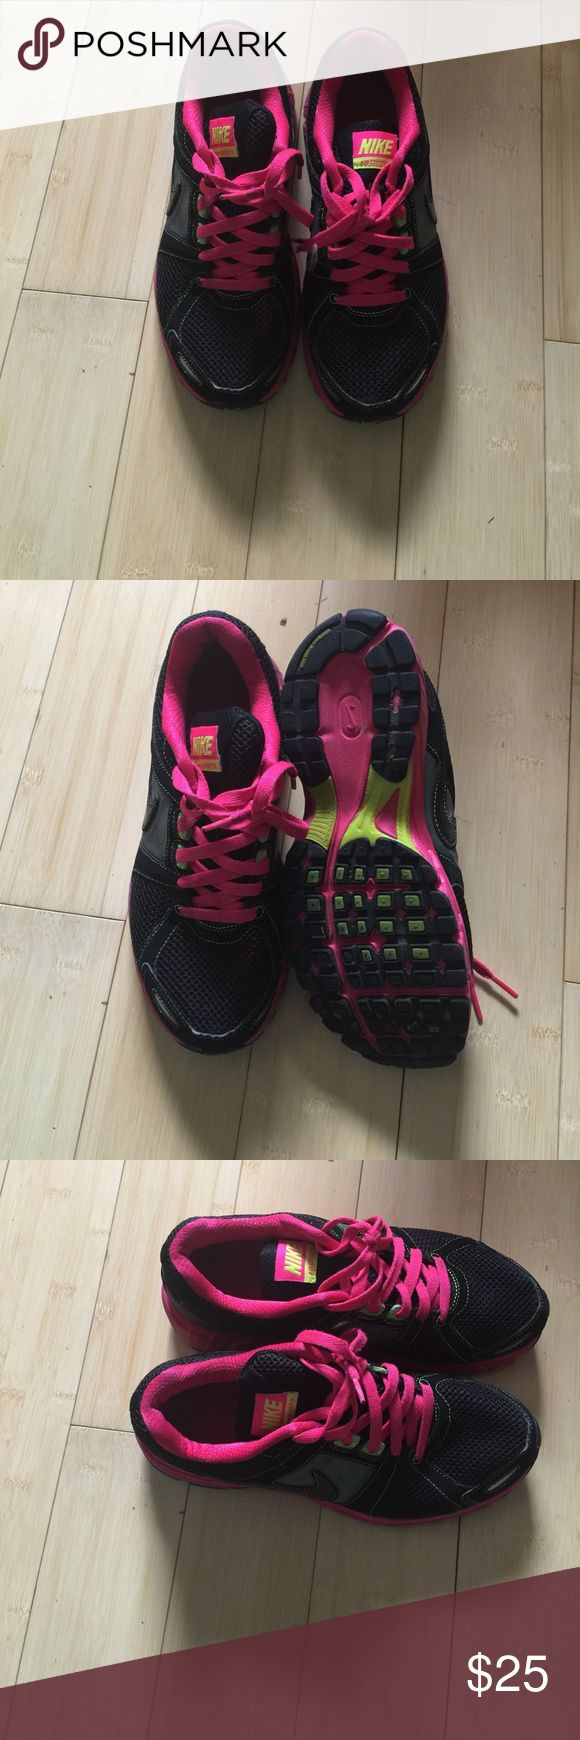 Nike black and pink Ladies size 8 Nike in great condition. Very comfortable. Nike Shoes Sneakers